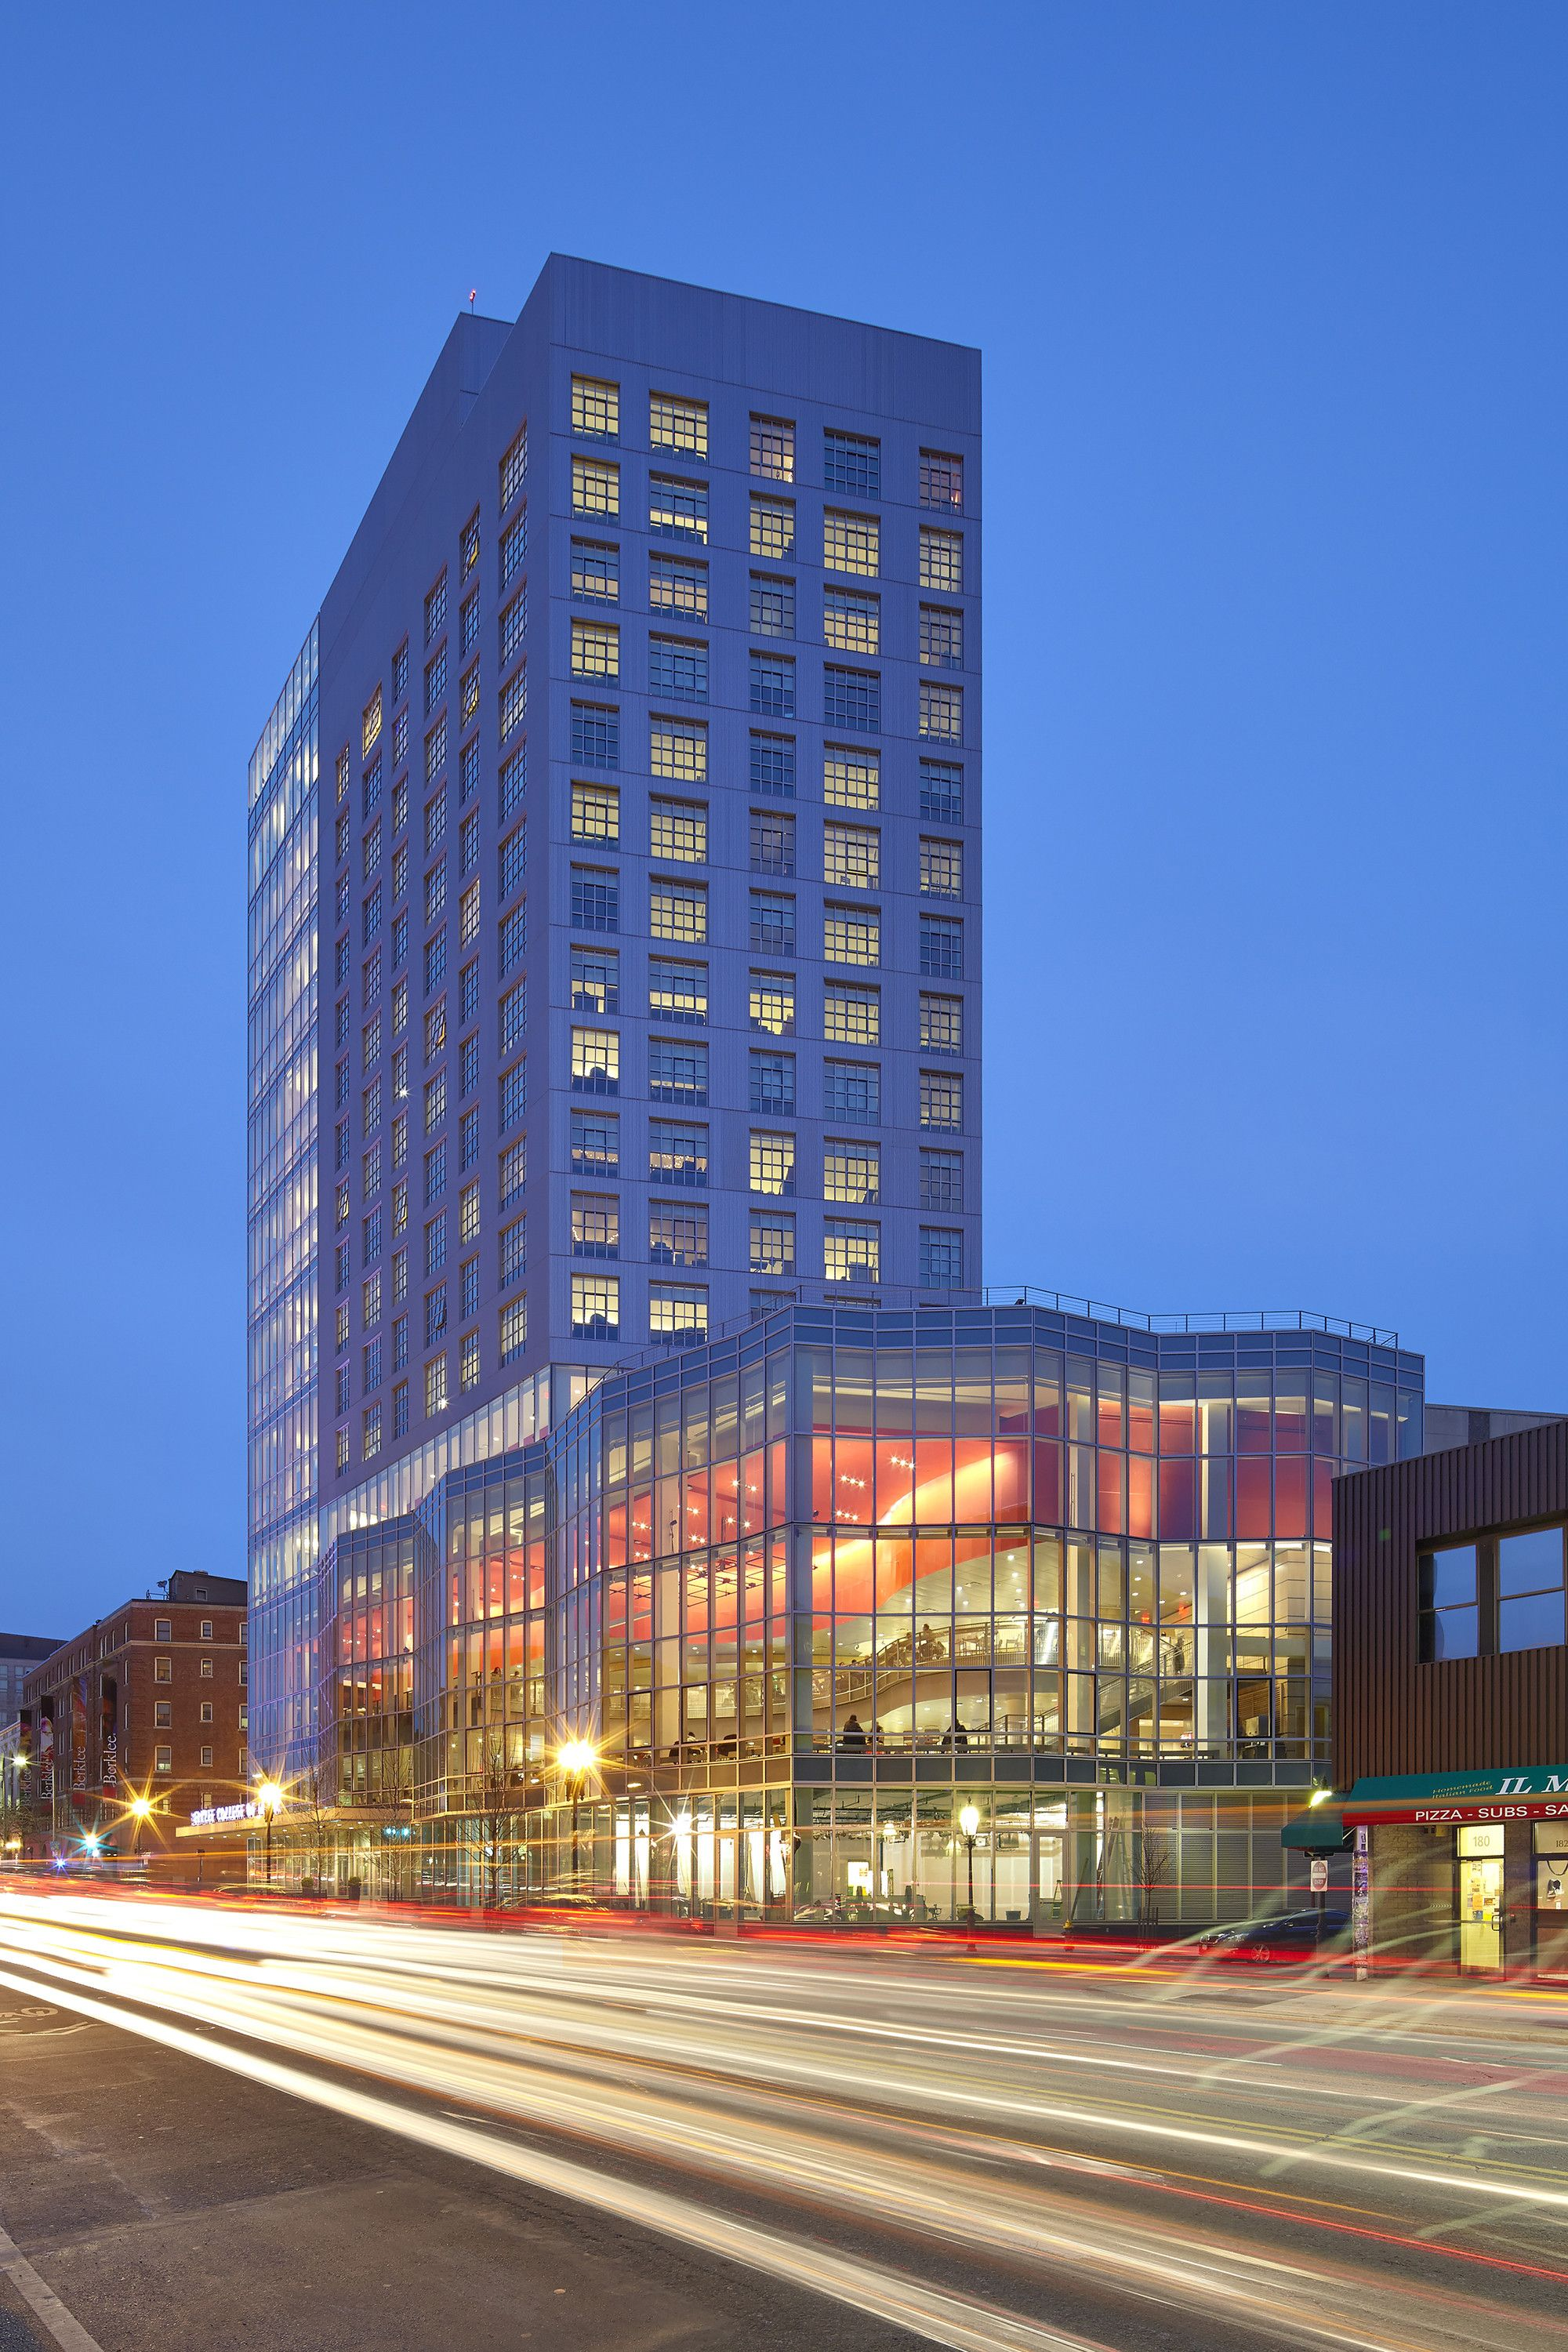 Built by William Rawn Associates in Boston, United States with date 2014. Images by Bruce T. Martin Photography. Fronting on Massachusetts Avenue, the new multi-use residence hall for Berklee College of Music strengthens the Colle...